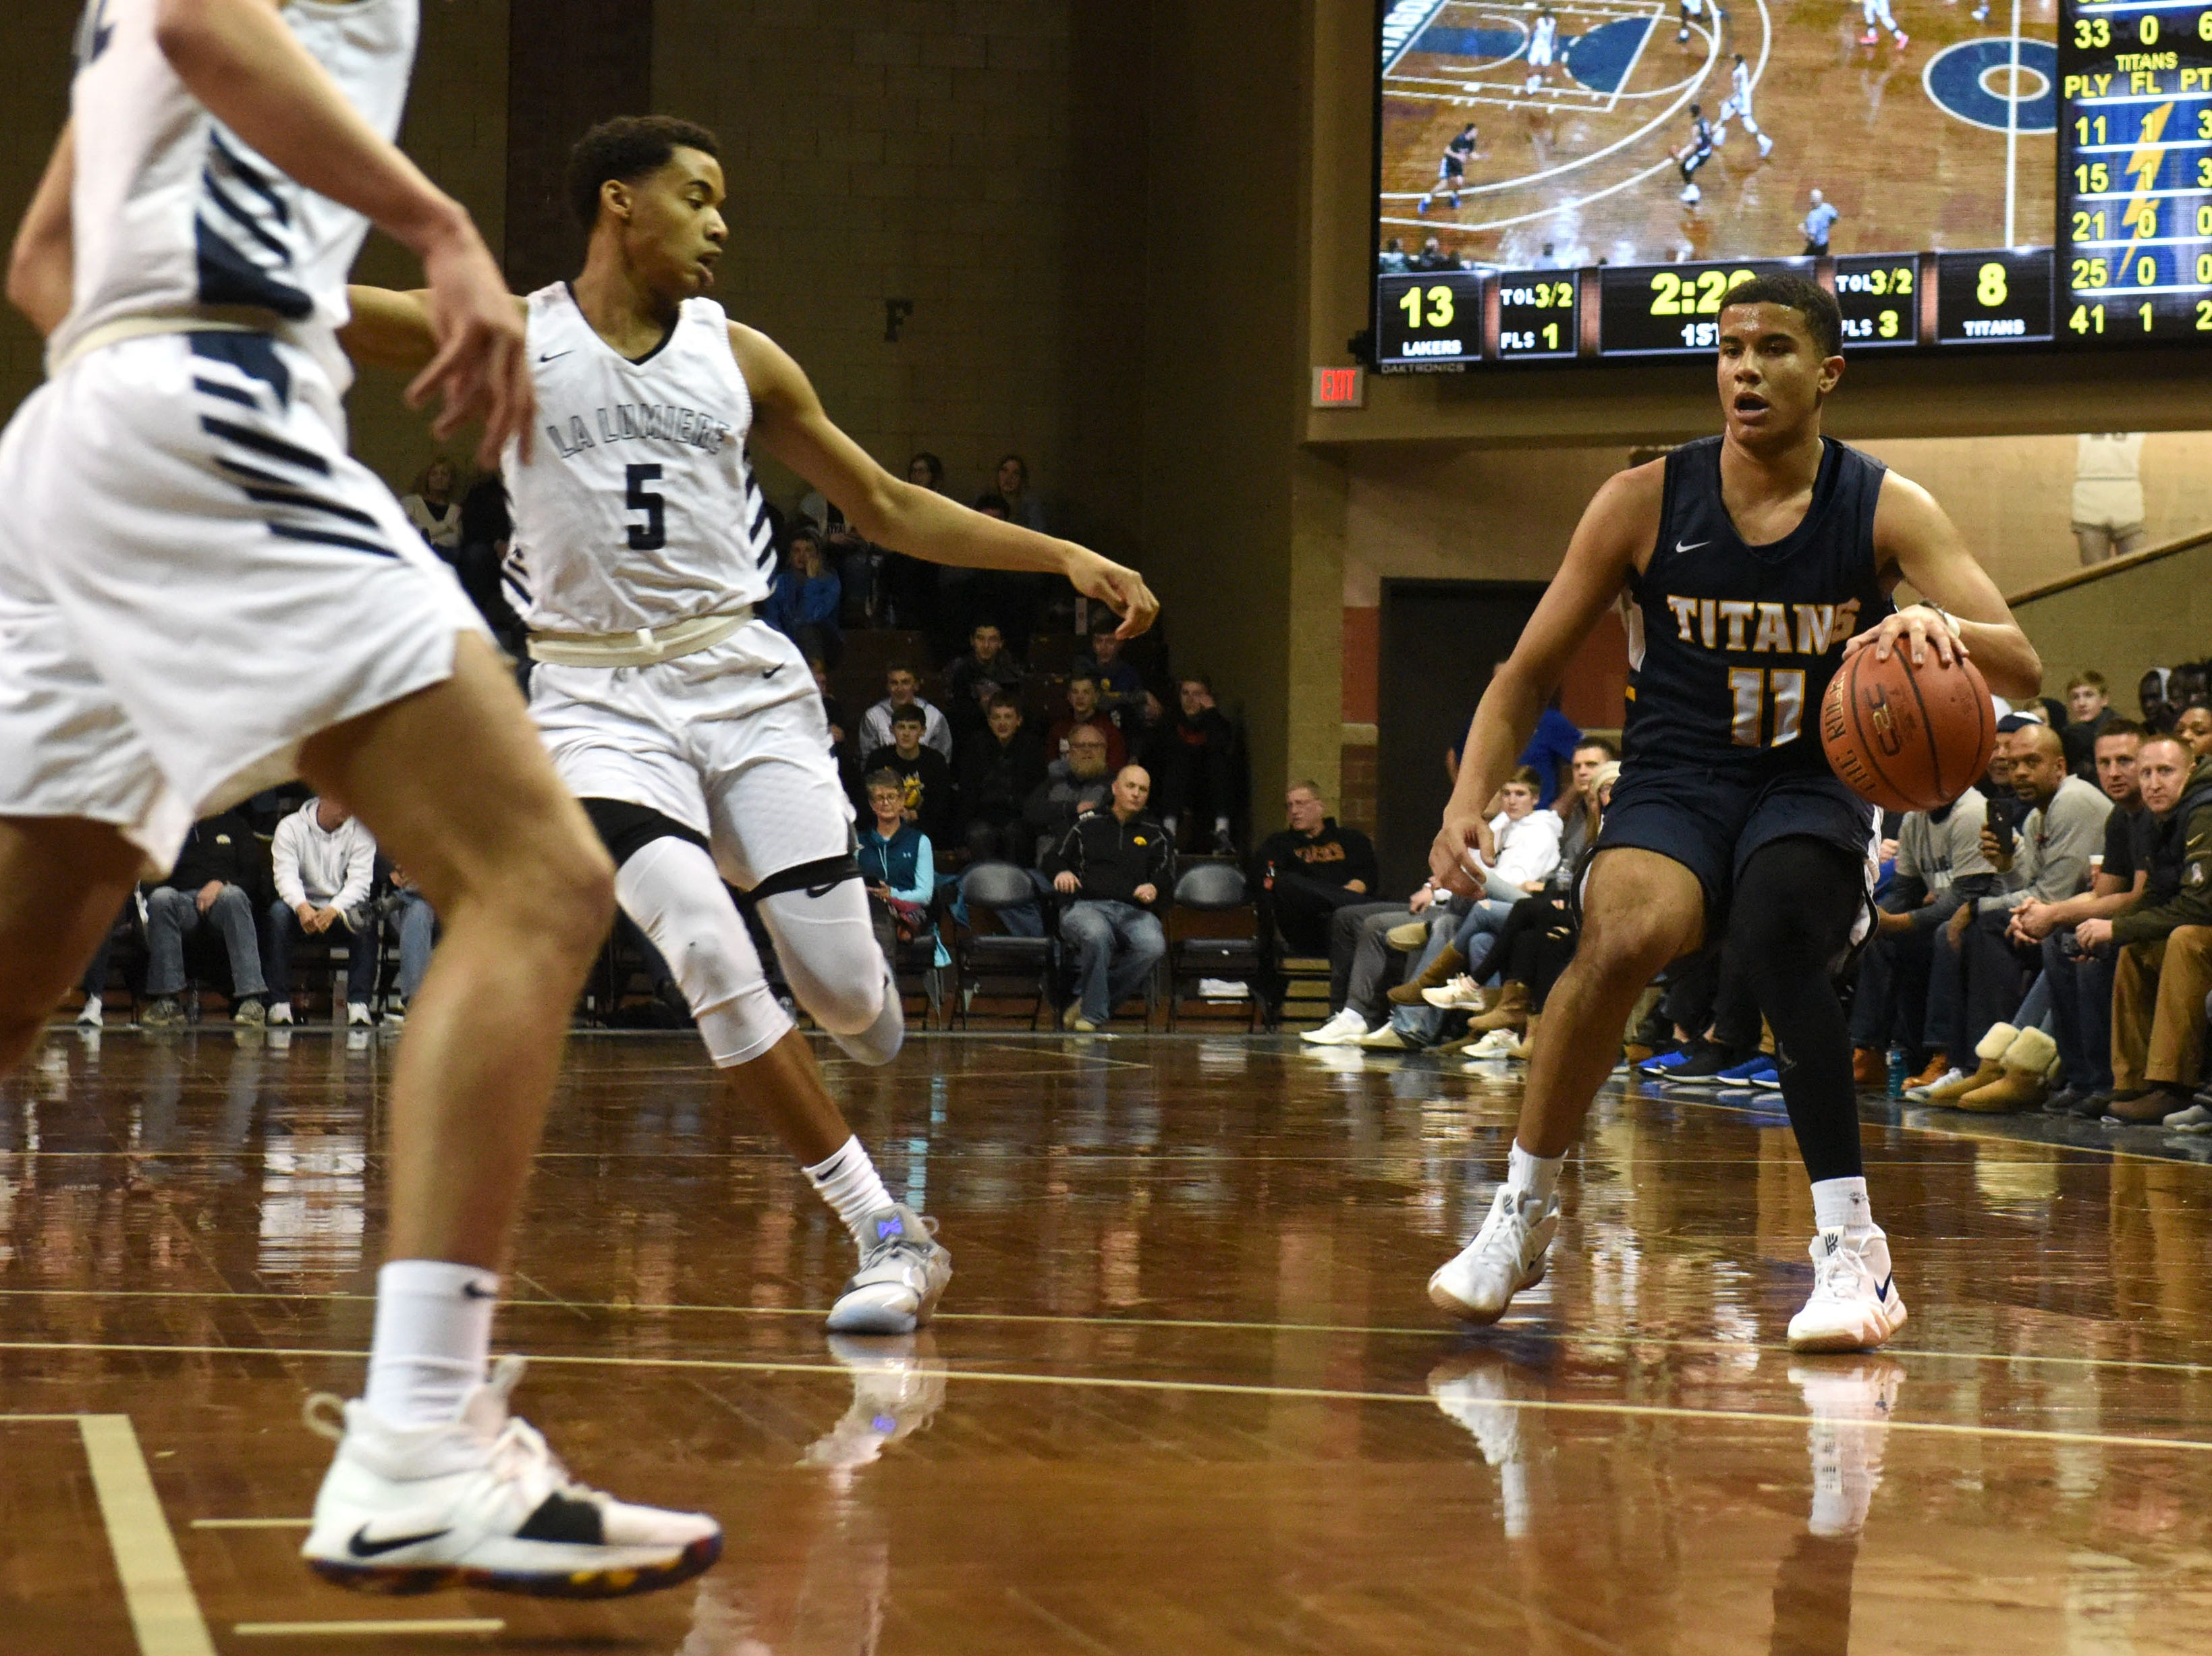 Tea's Justin Hohn (11) dribbles the ball during a game against La Lumiere at the Hoop City Classic at the Sanford Pentagon in Sioux Falls, S.D., Saturday, Dec. 29, 2018.